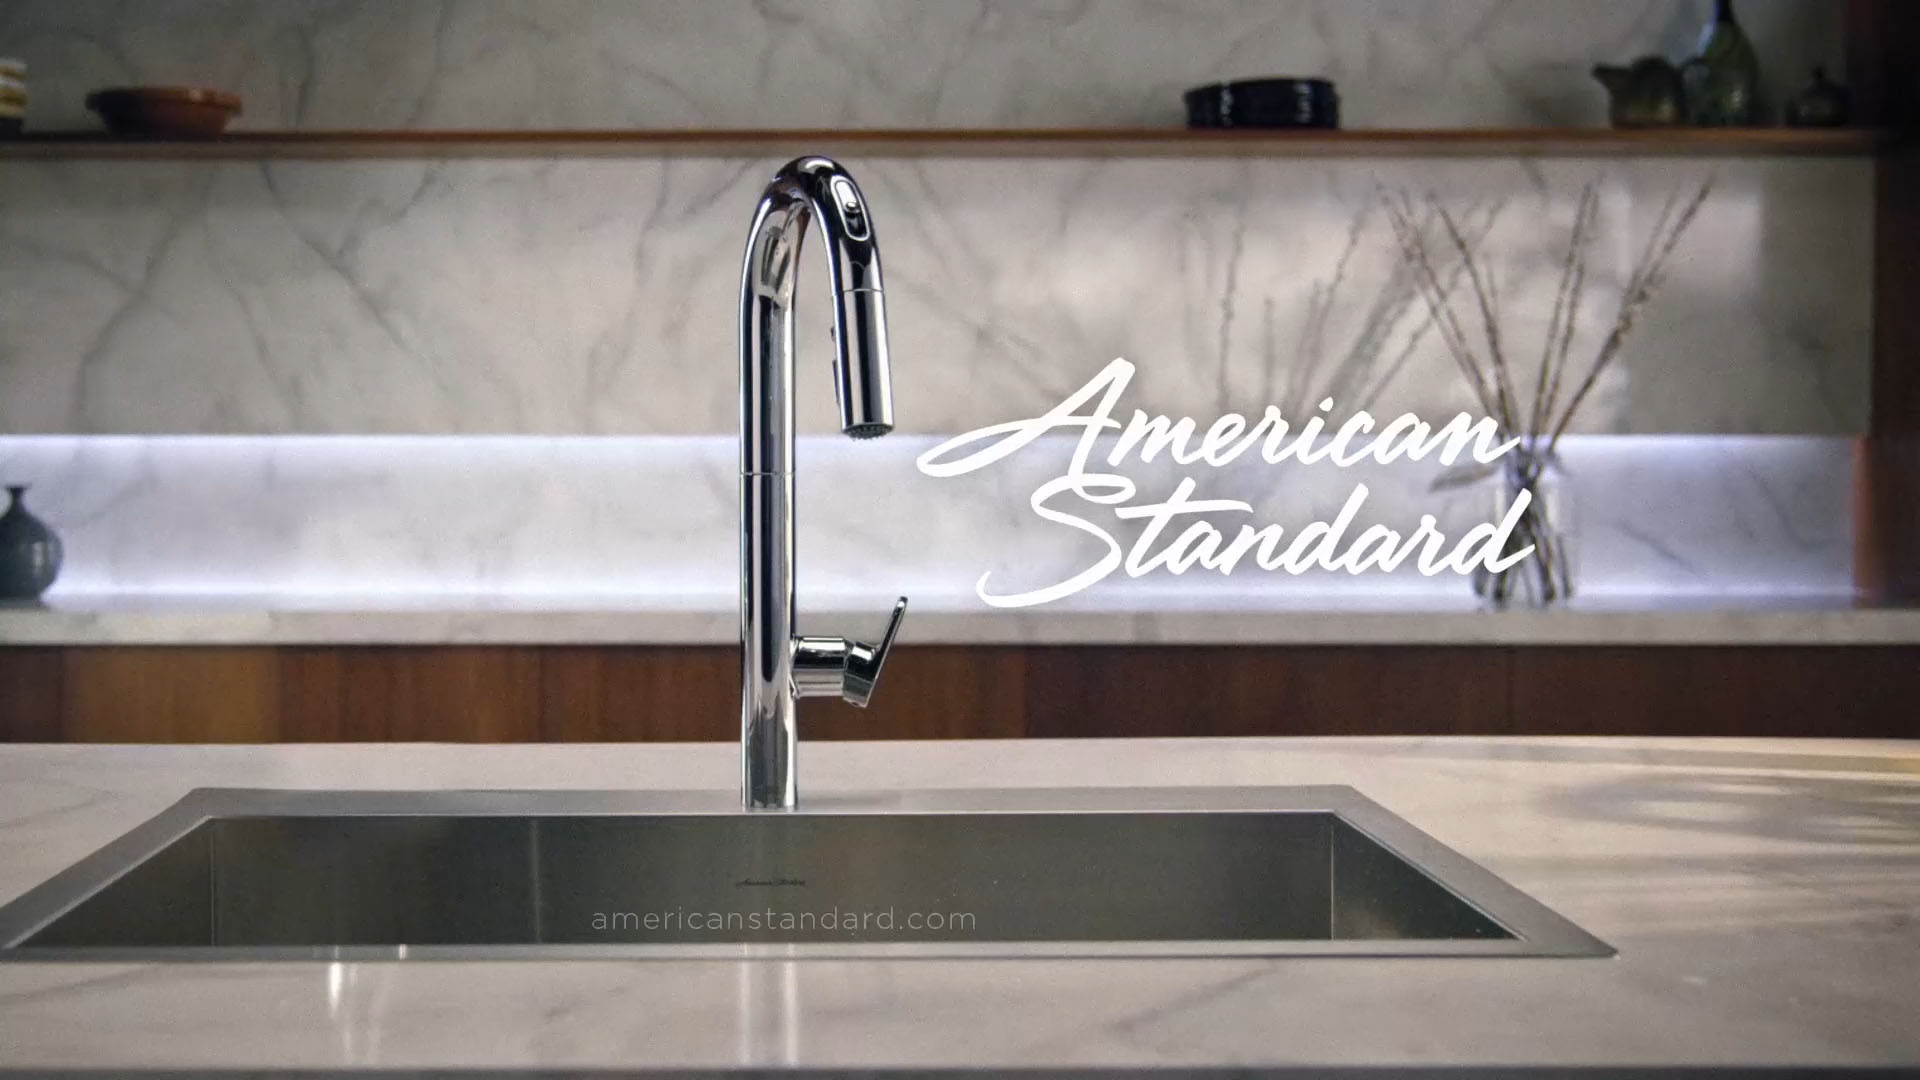 c american standard kitchen faucets